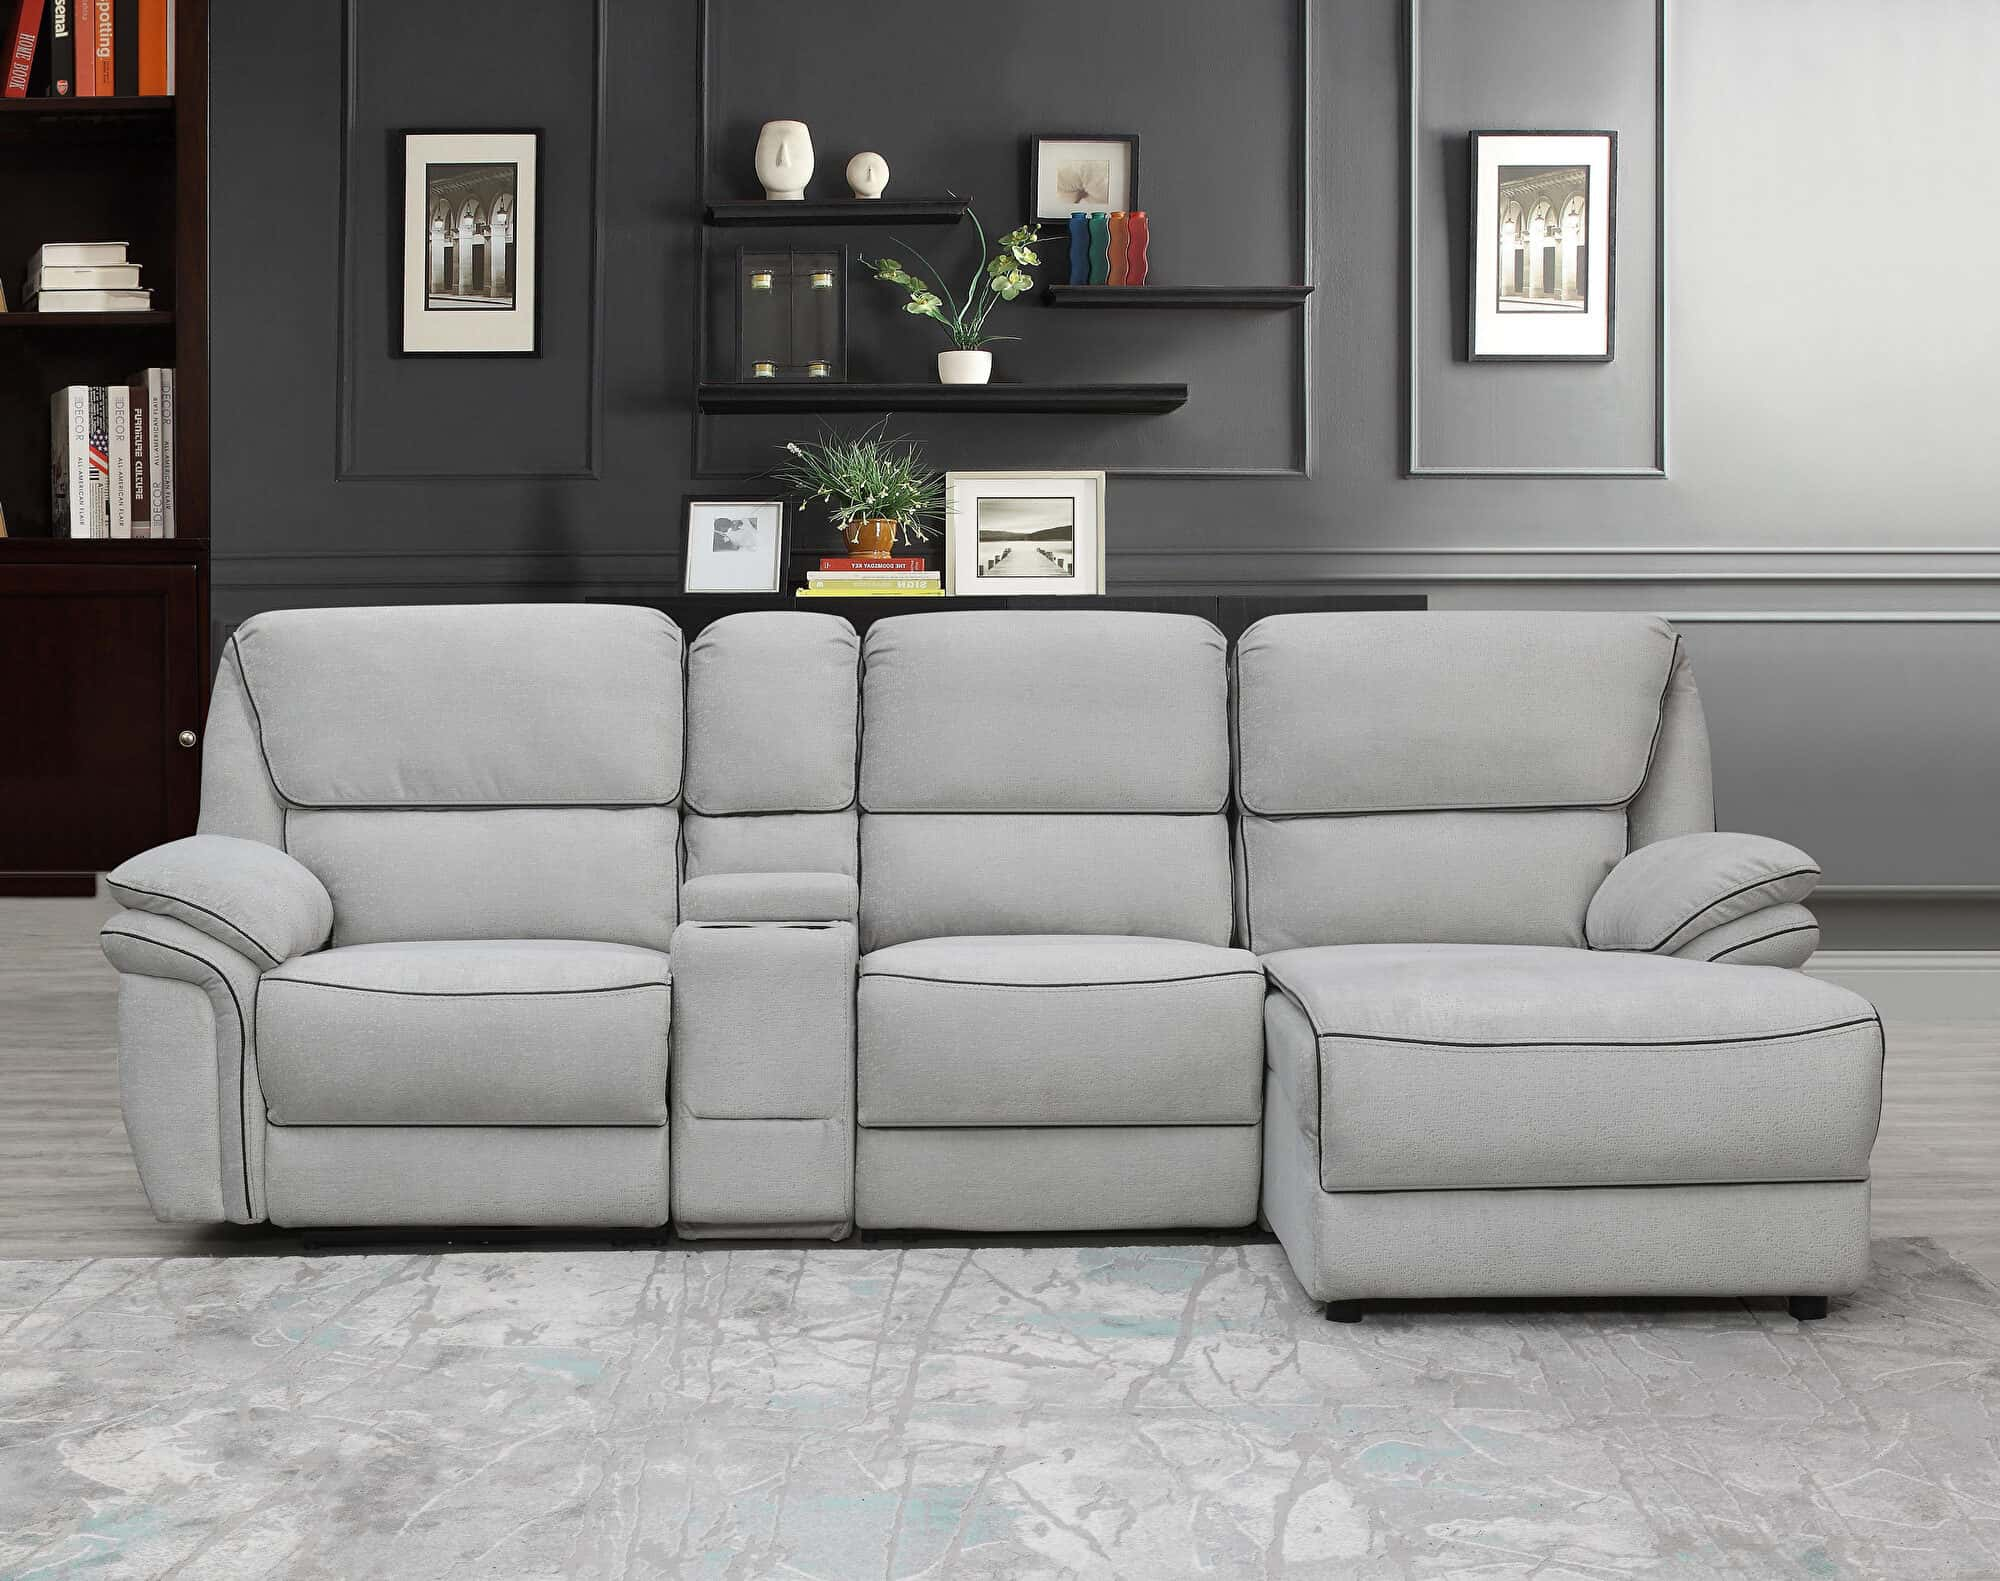 u141 power reclining light gray 4pc sectional sofa by global furniture